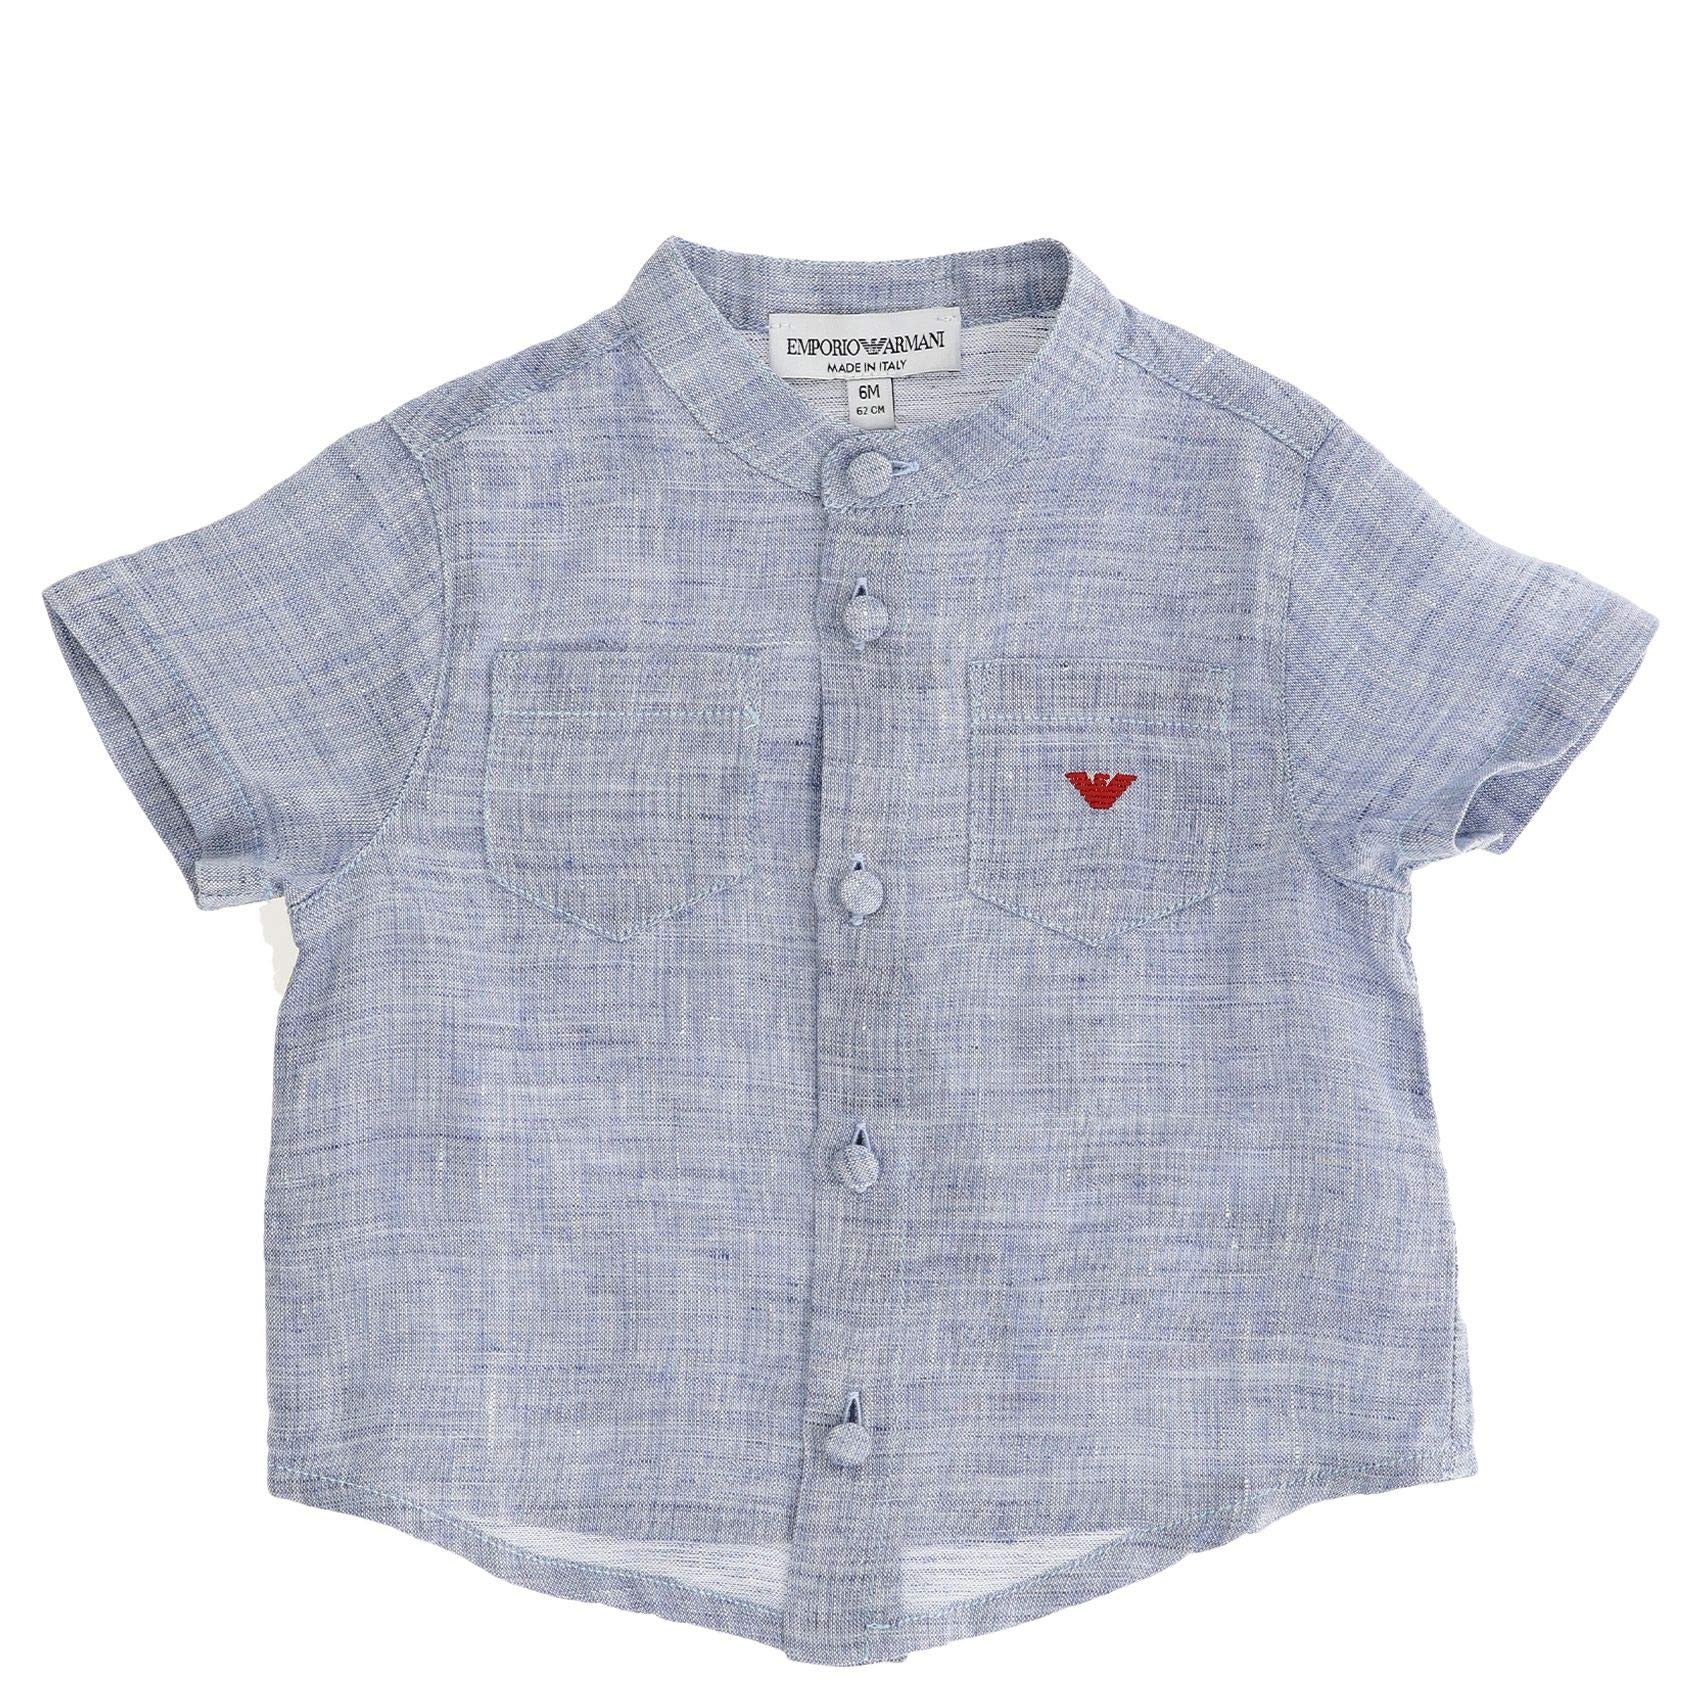 Emporio Armani Luxury Fashion Baby-Boys Shirt Summer Light Blue by Emporio Armani